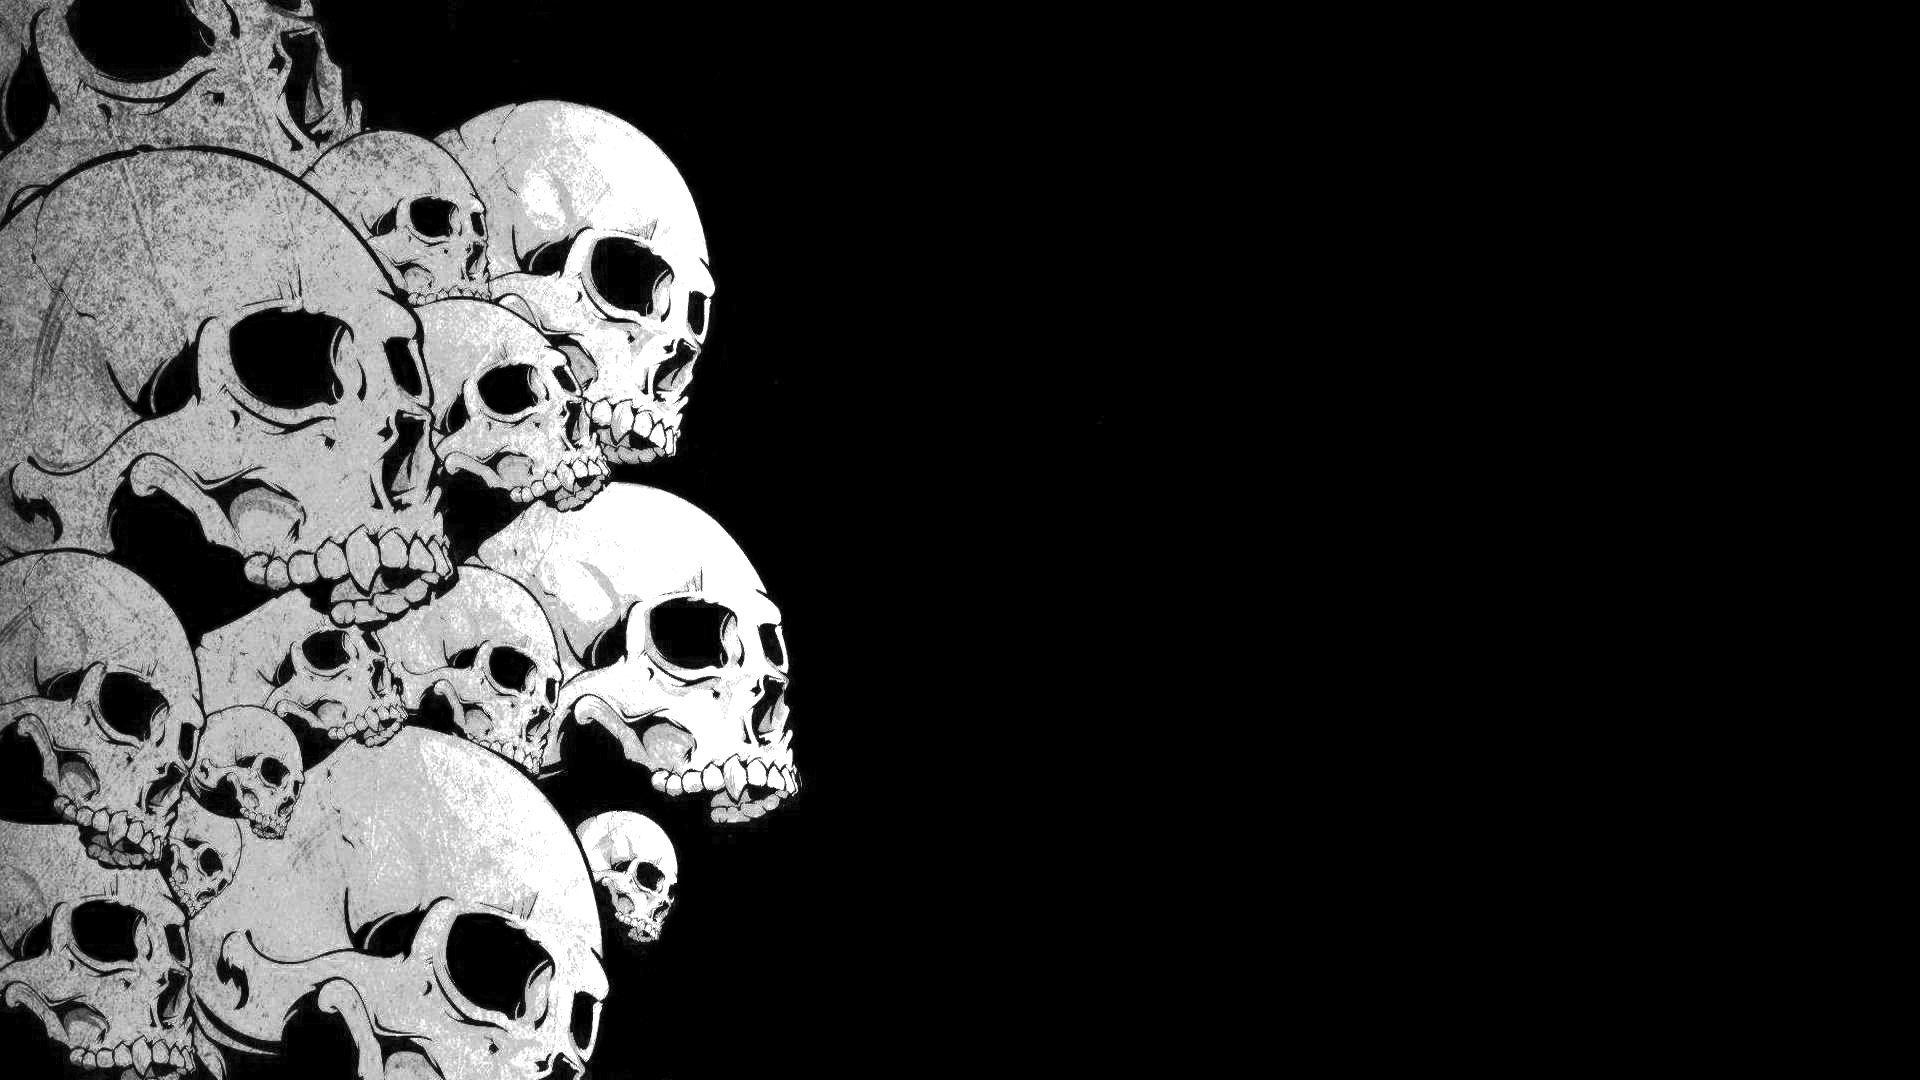 skull wallpaper wallpapers hd - photo #7